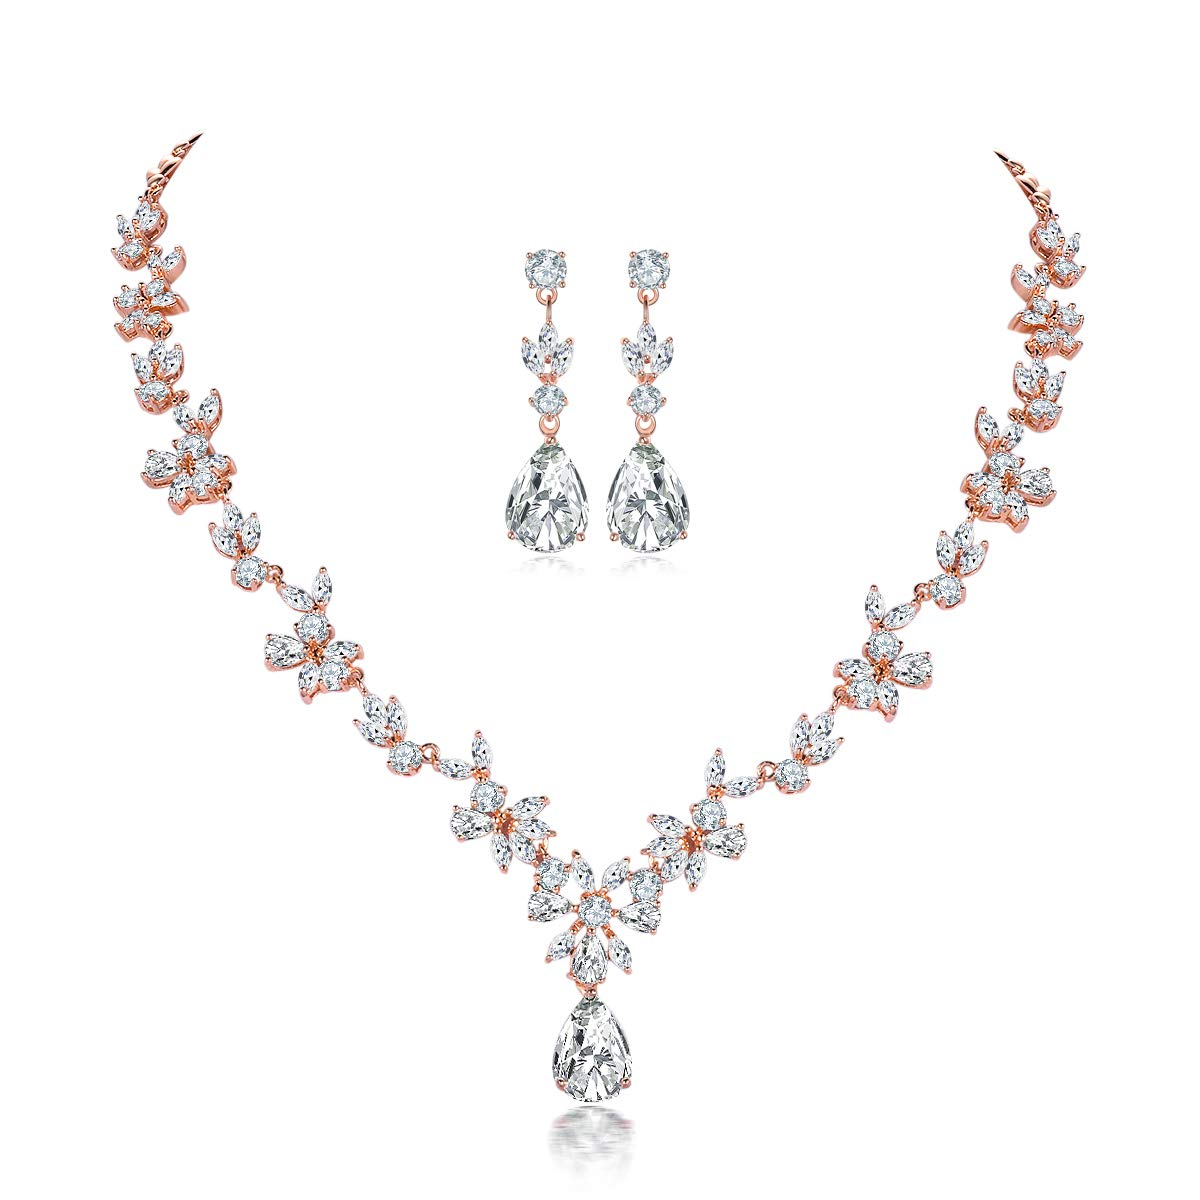 Shuxin Jewellery Set For Women Necklace Dangle Earrings Bracelet Set White Gold Plated Rose Gold Jewelry Set With Buy Online In Japan At Desertcart Jp Productid 181336483